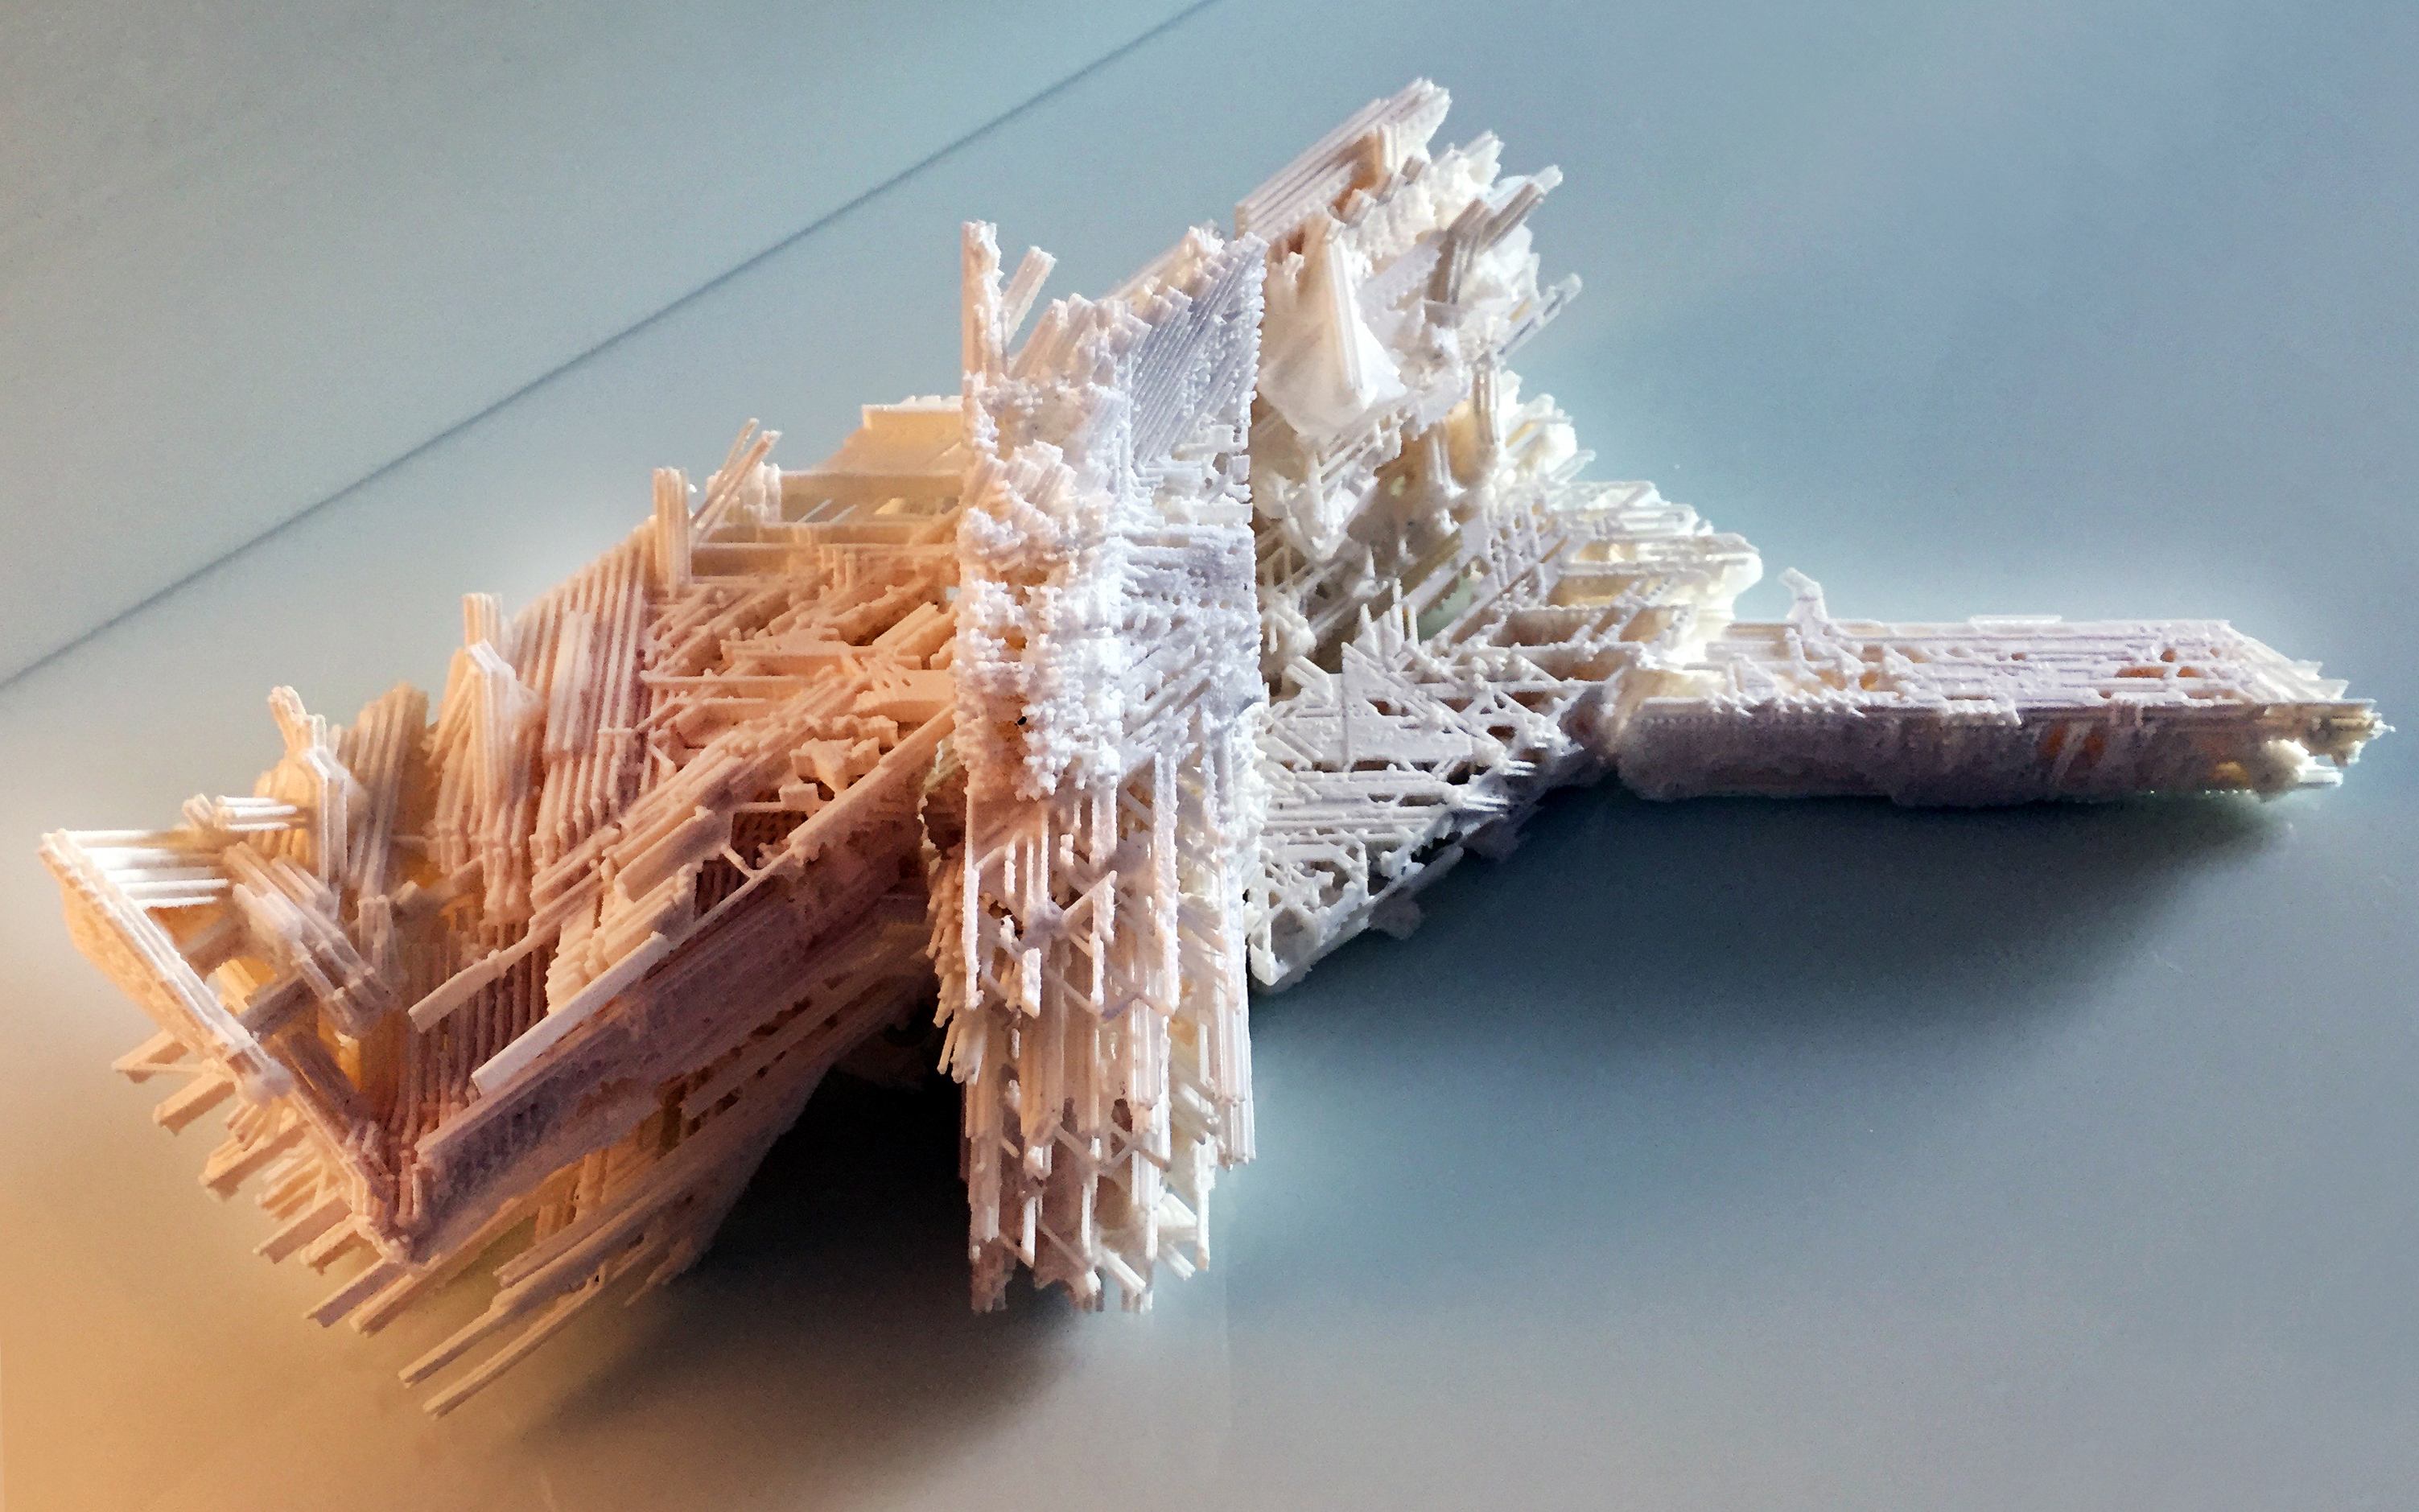 3D printed Architetcural model in orange and blue lighting